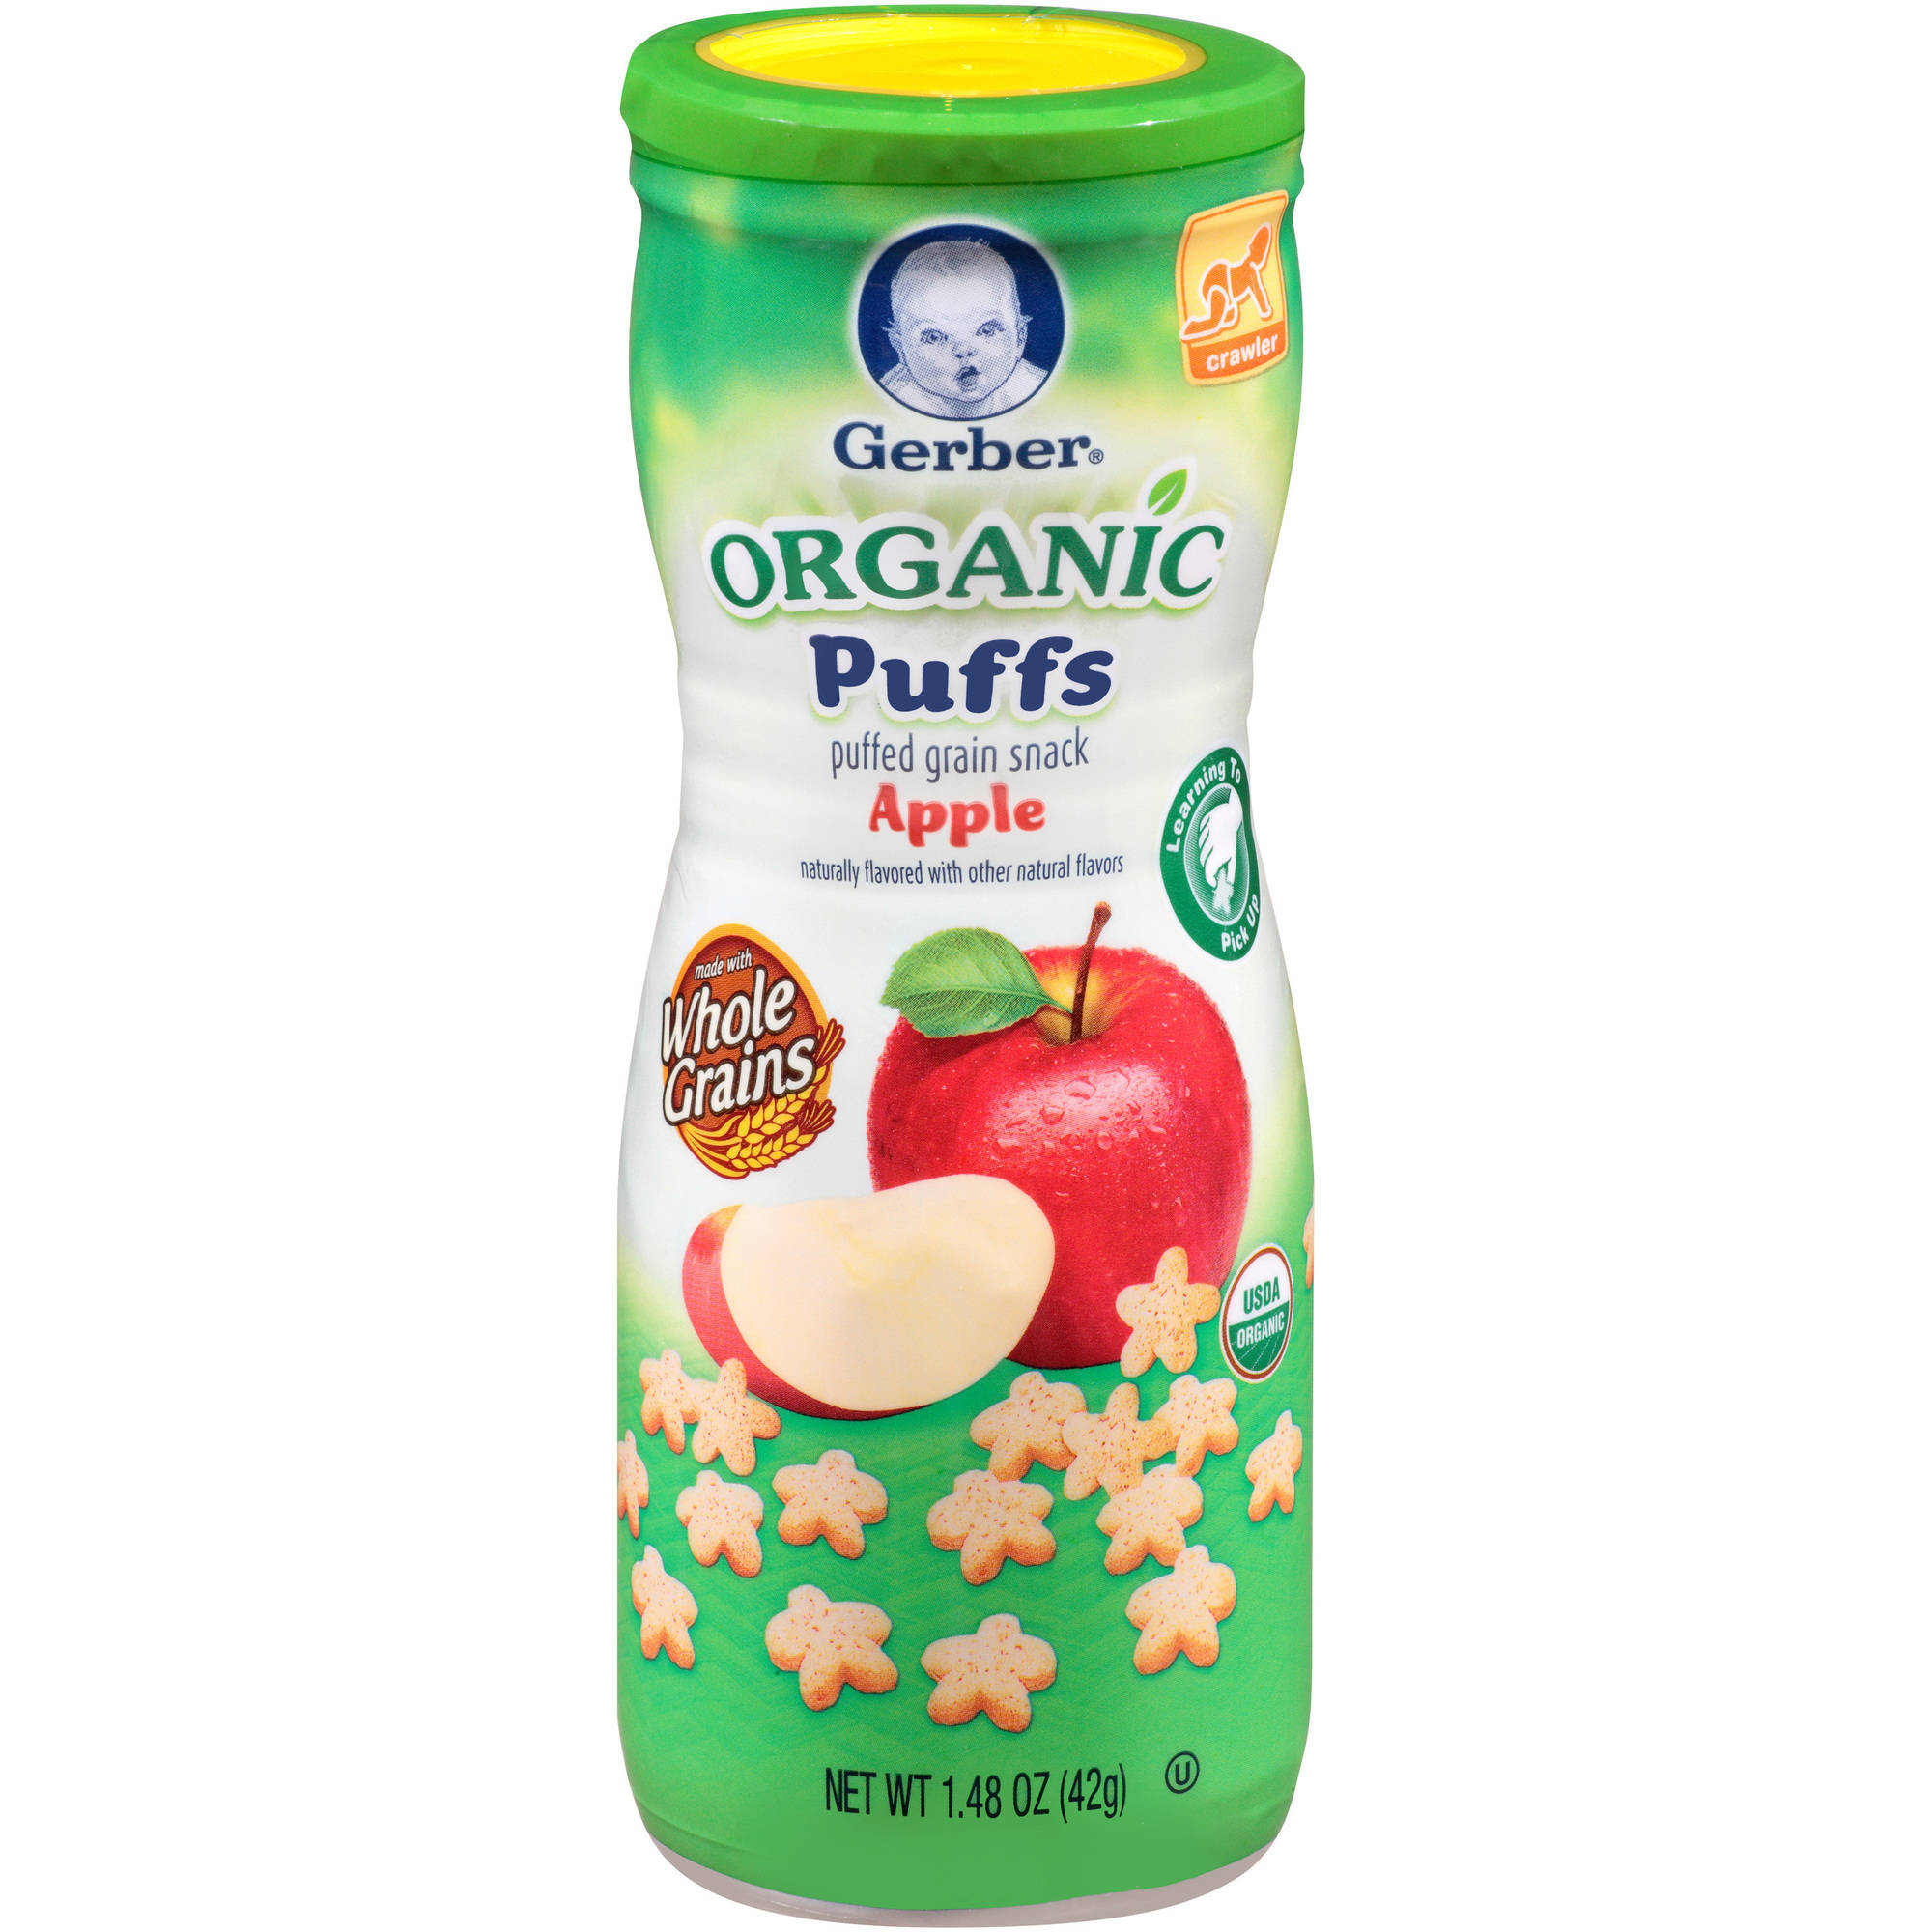 Gerber Organic Puffs, Apple, 1.48 oz (Pack of 6) by GERBER GRADUATES ORGANIC PUFFS